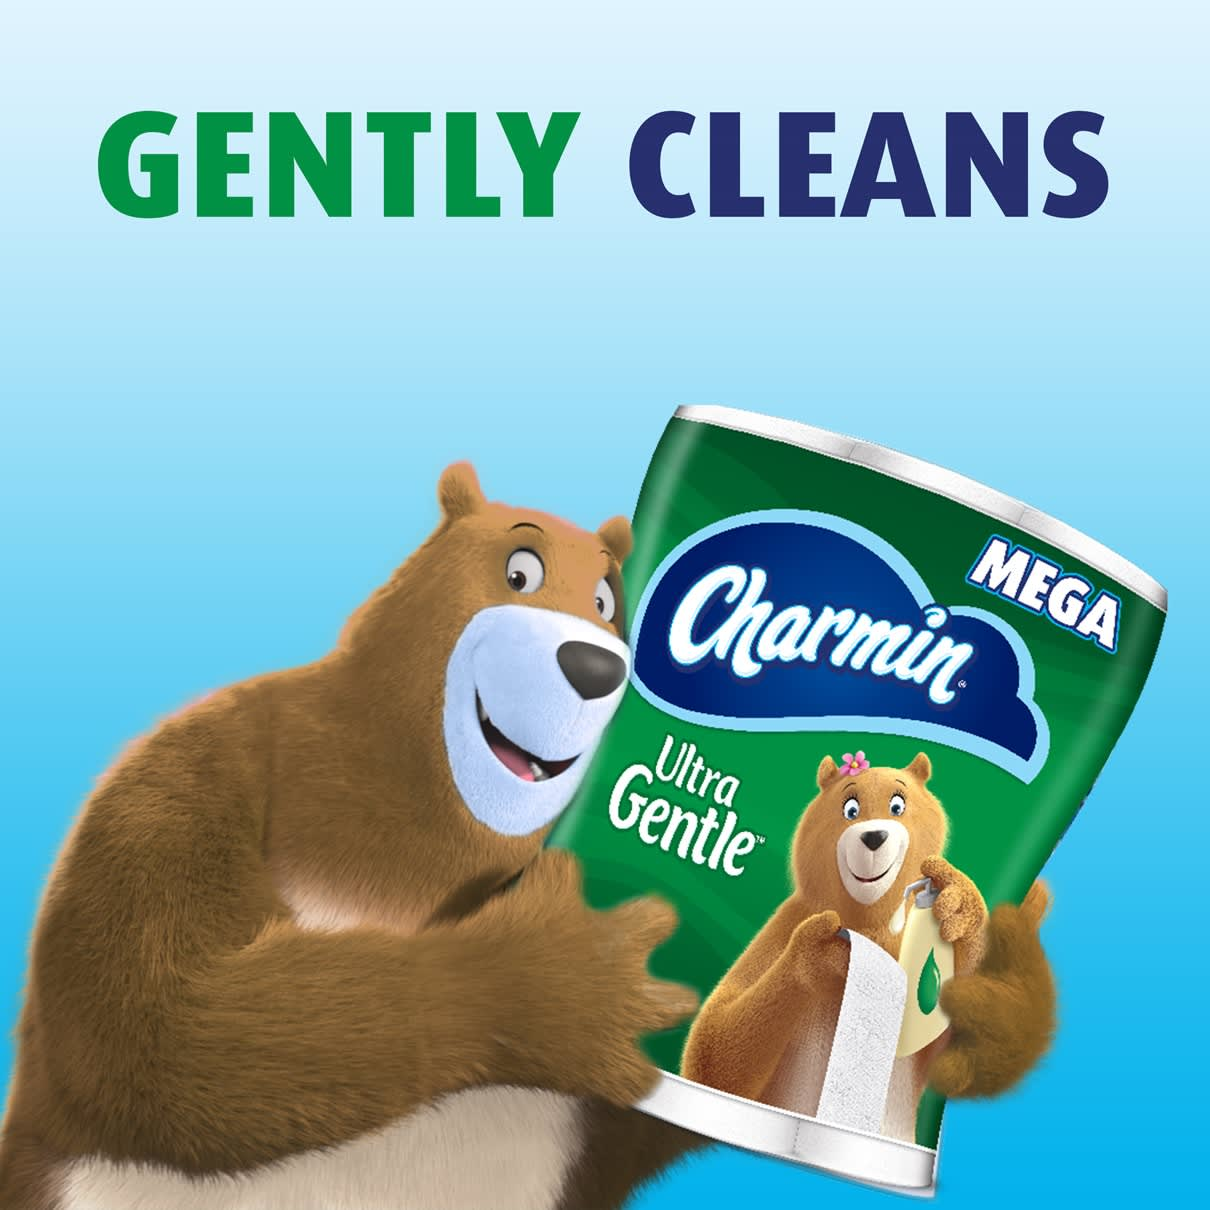 Cleans gently with ultra gentle toilet paper